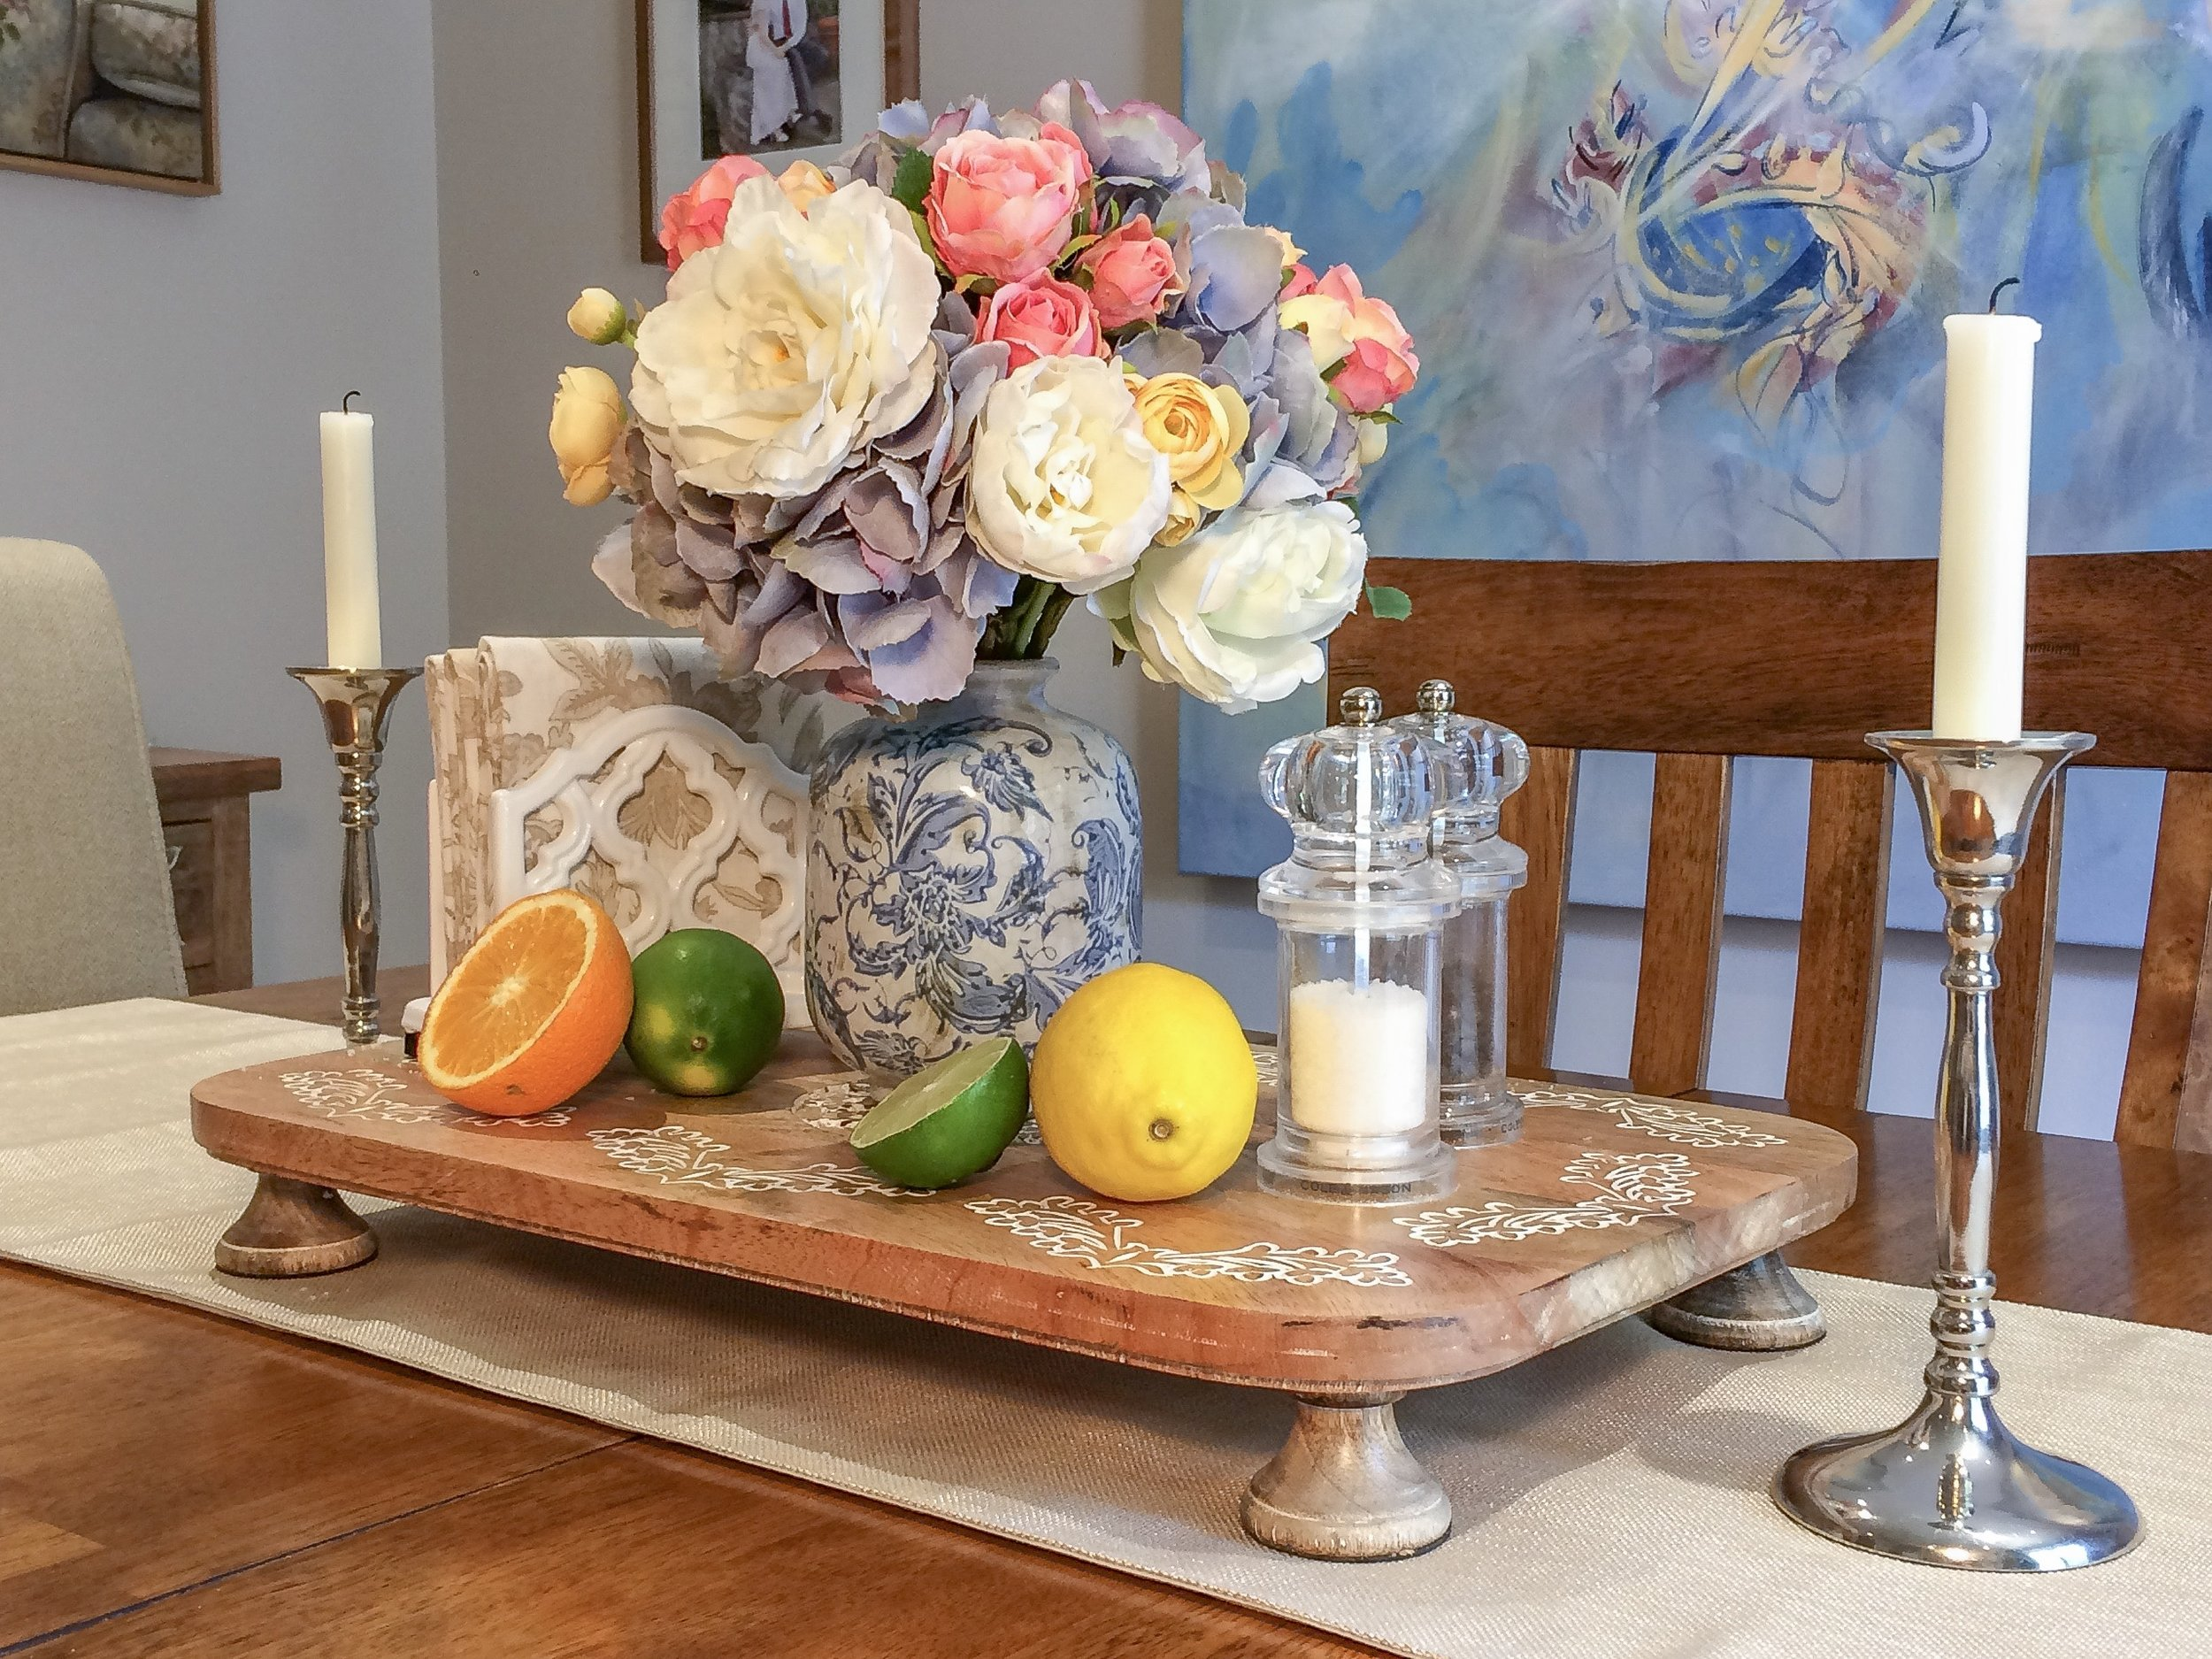 Summer Tablescape . The salmon pink mini roses brighten up the floral arrangement while the citrus fruits add more pops of color and give the centerpiece a more summery vibe. The ivory patterned napkins also help to lighten the display.